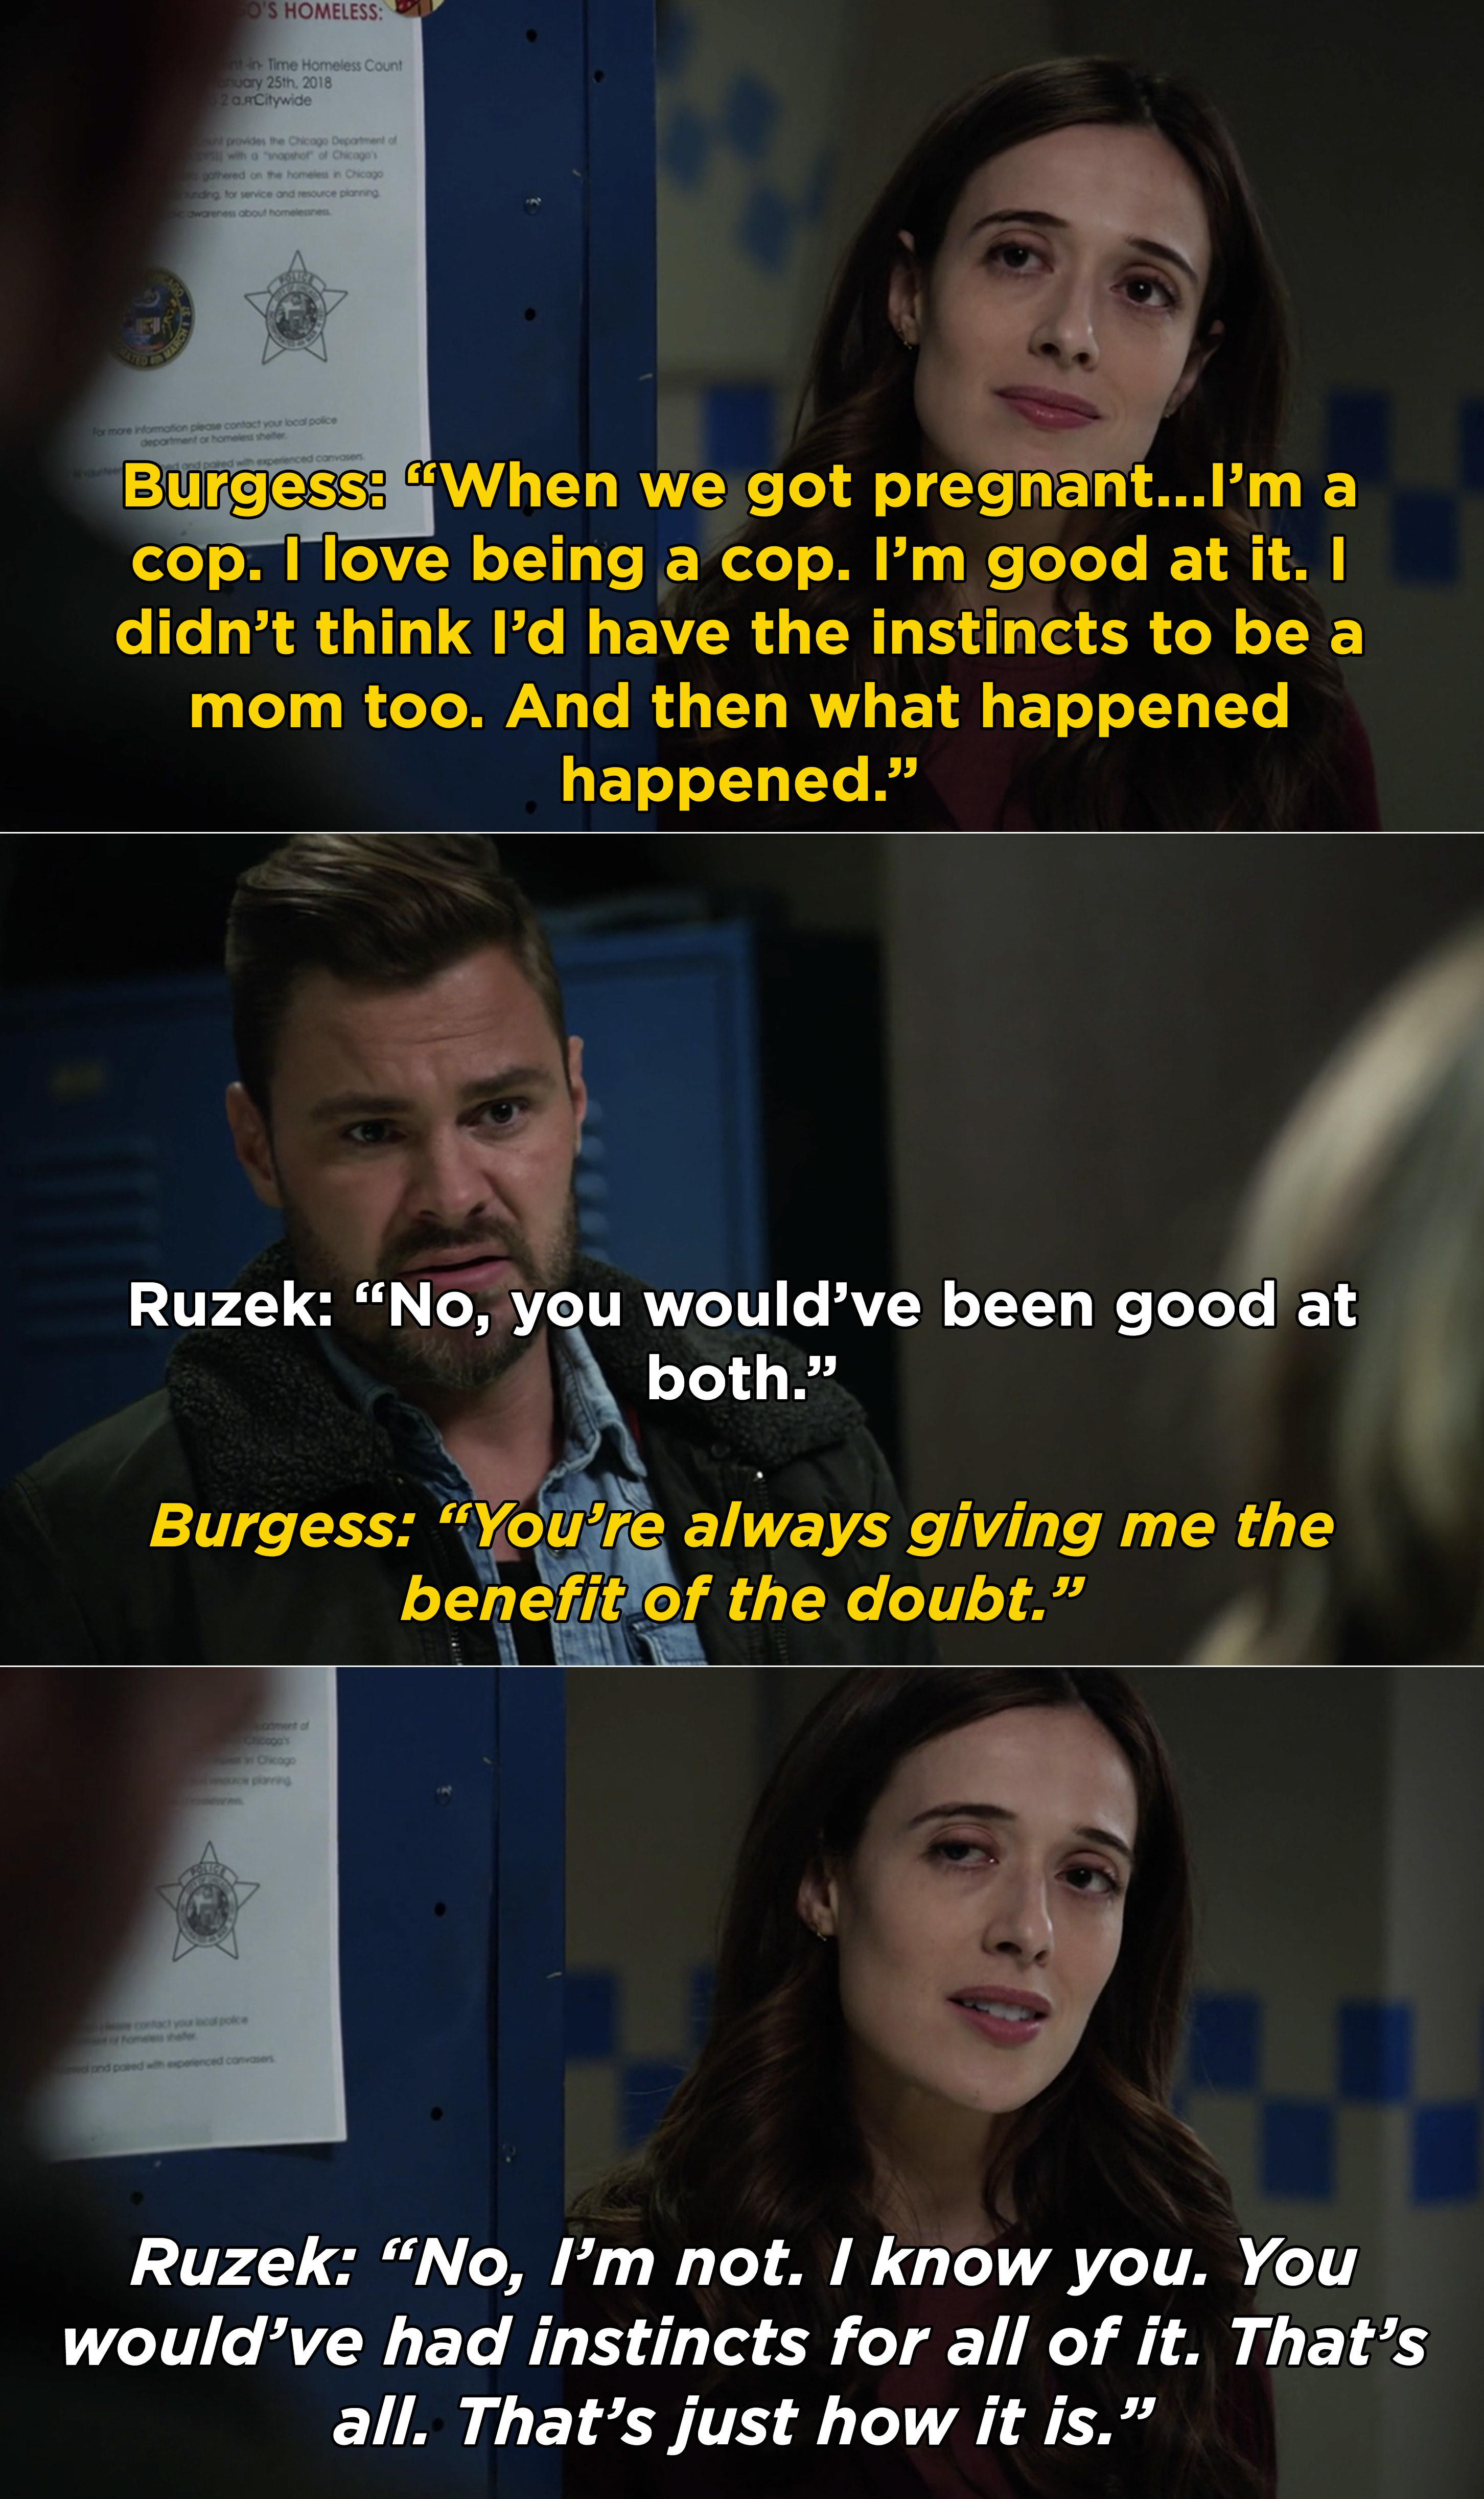 Ruzek assuring Burgess that she would've had great mom instincts, just like she has great instincts as a cop